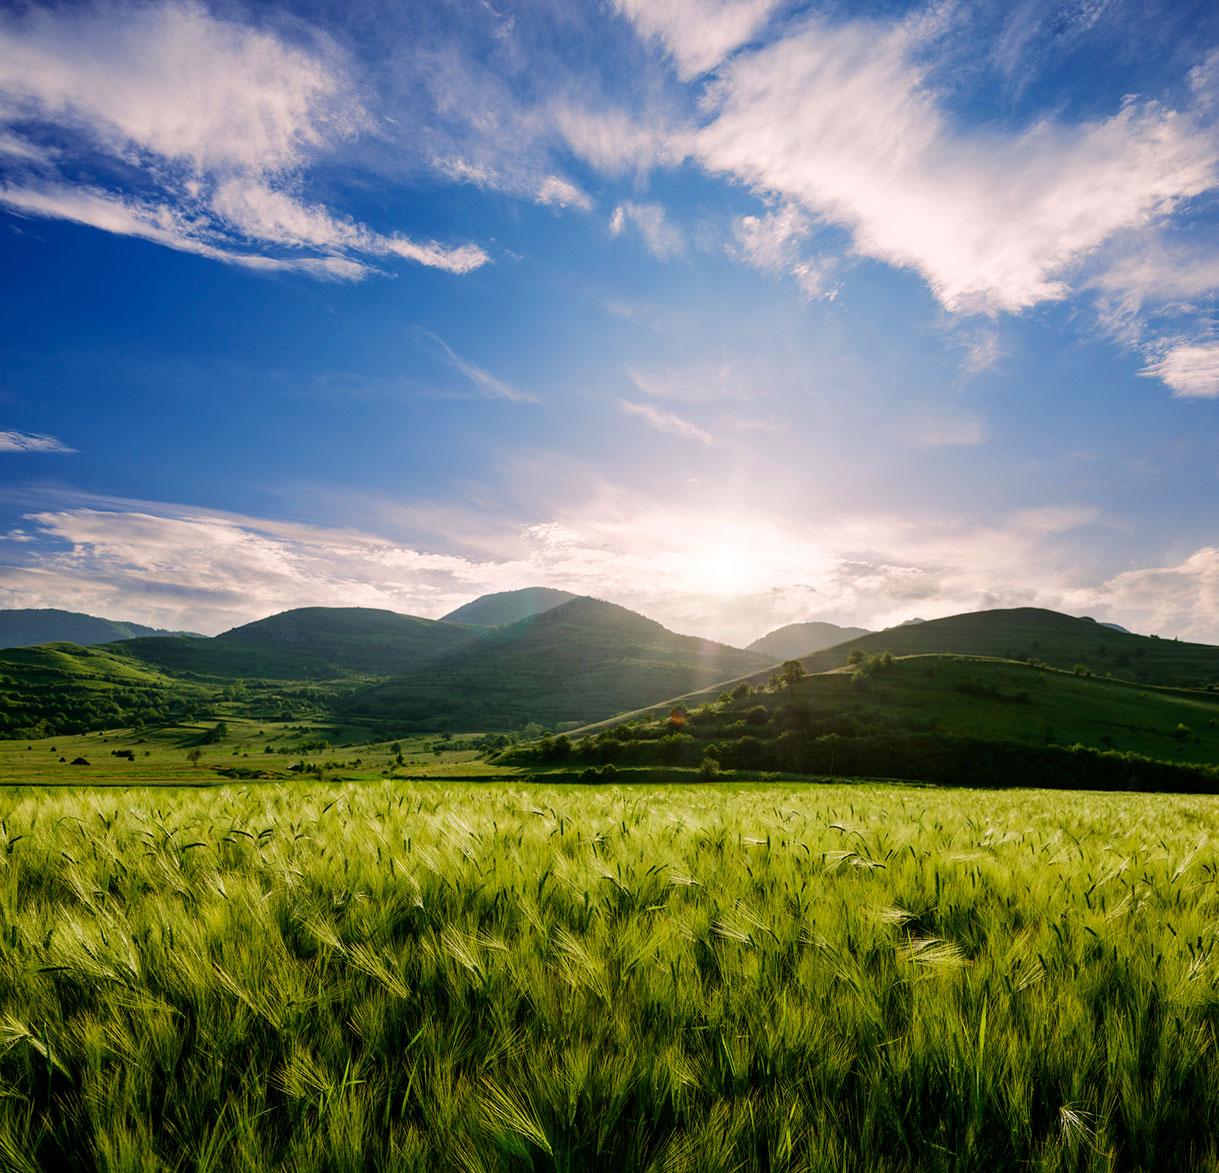 Barley-field-and-hills-in-the-sunset